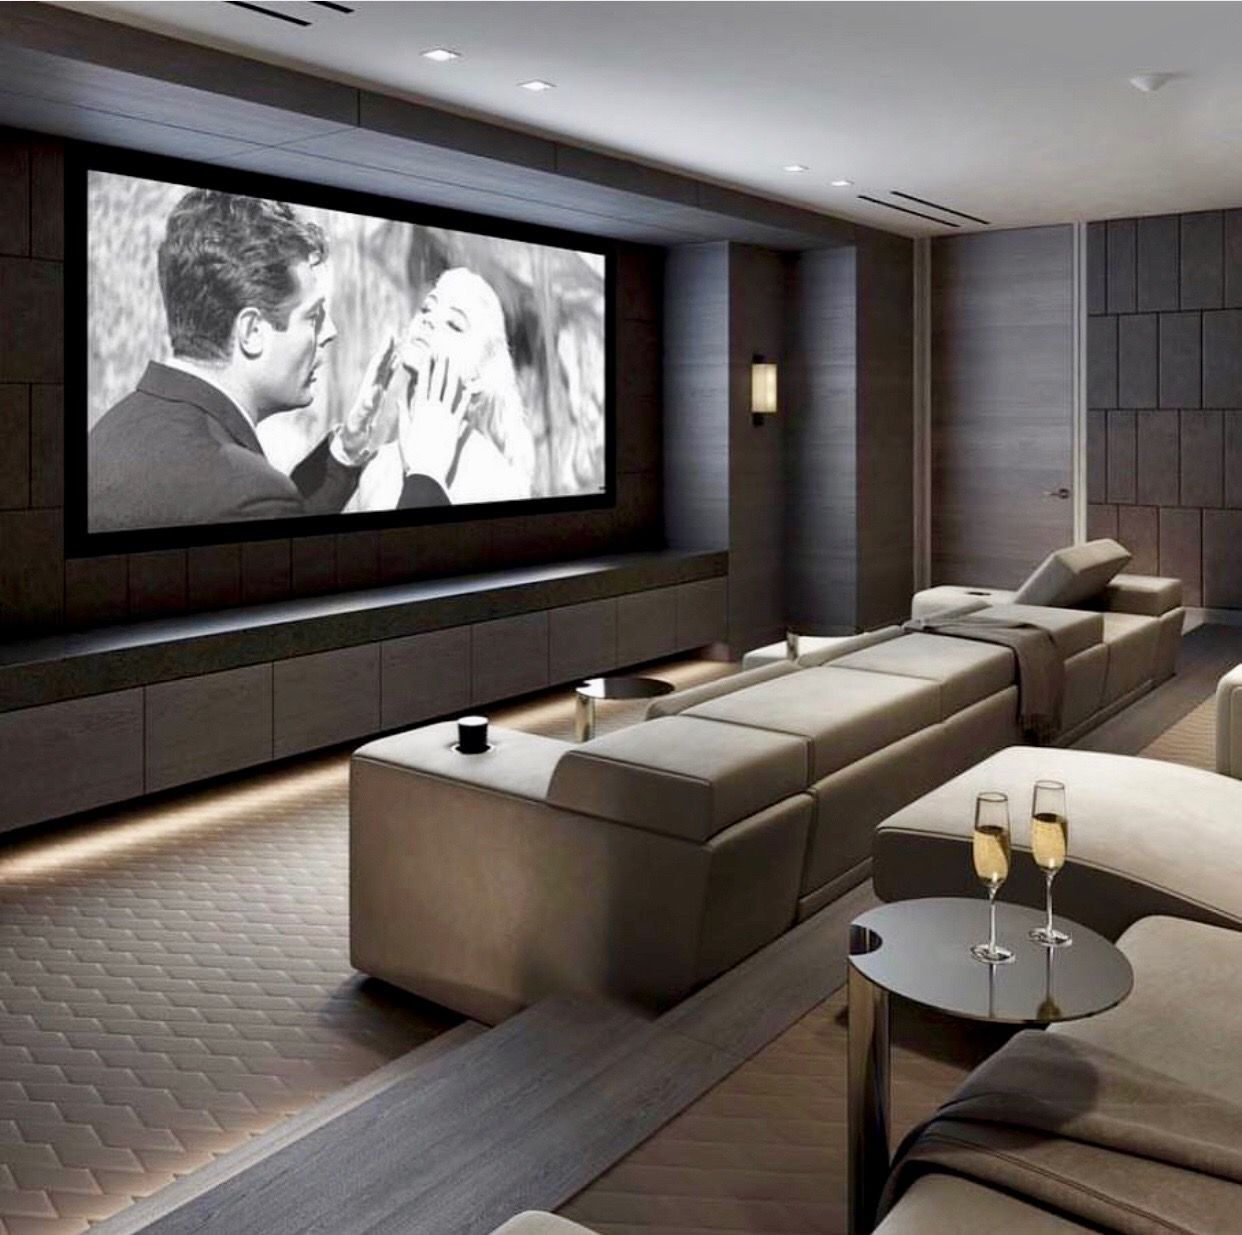 Interior Design Ideas For Home Theater: Pin By Boris Vasovski On Ideas For Interior Design